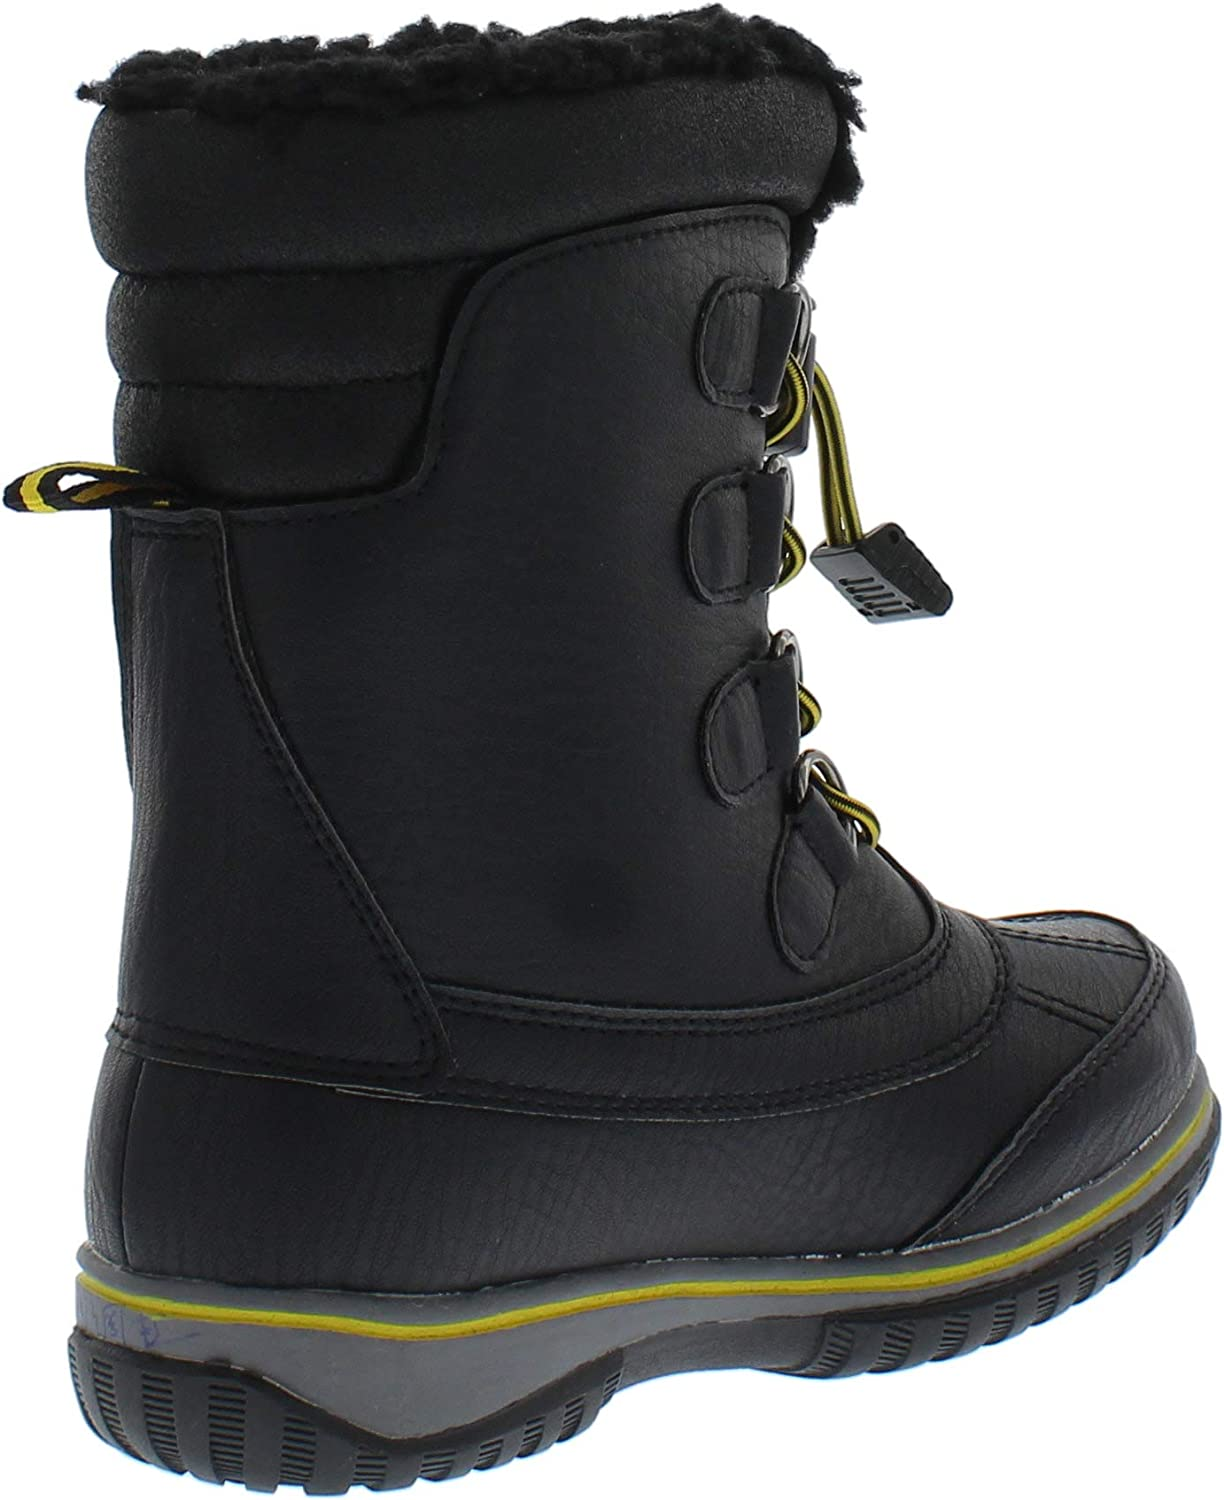 Weatherproof Kids Sleigh Waterproof Insulated Snow Boot for Boys and Girls